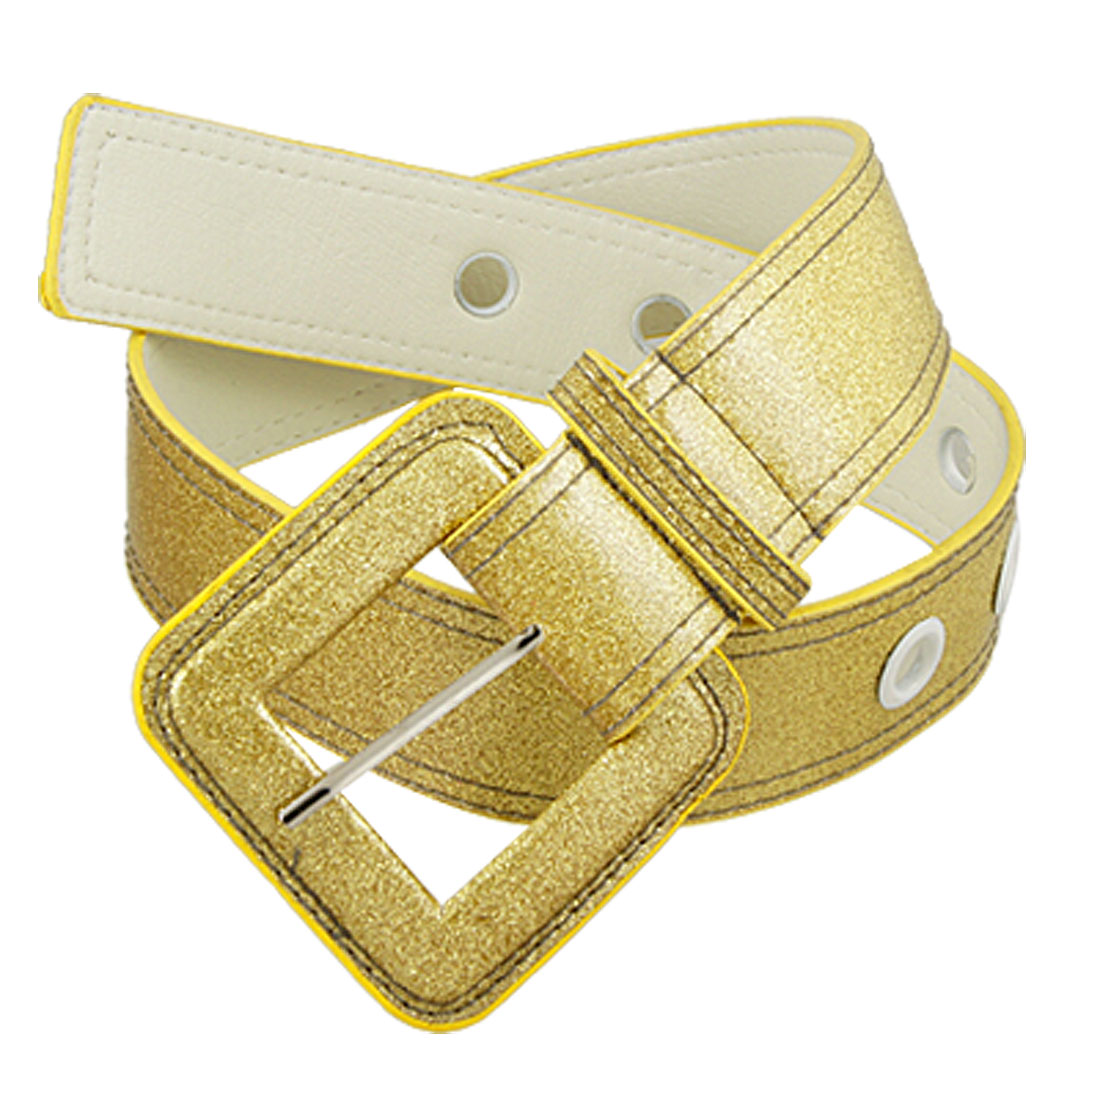 Ladies Gold Tone Faux Leather Single Prong Buckle Waist Belt